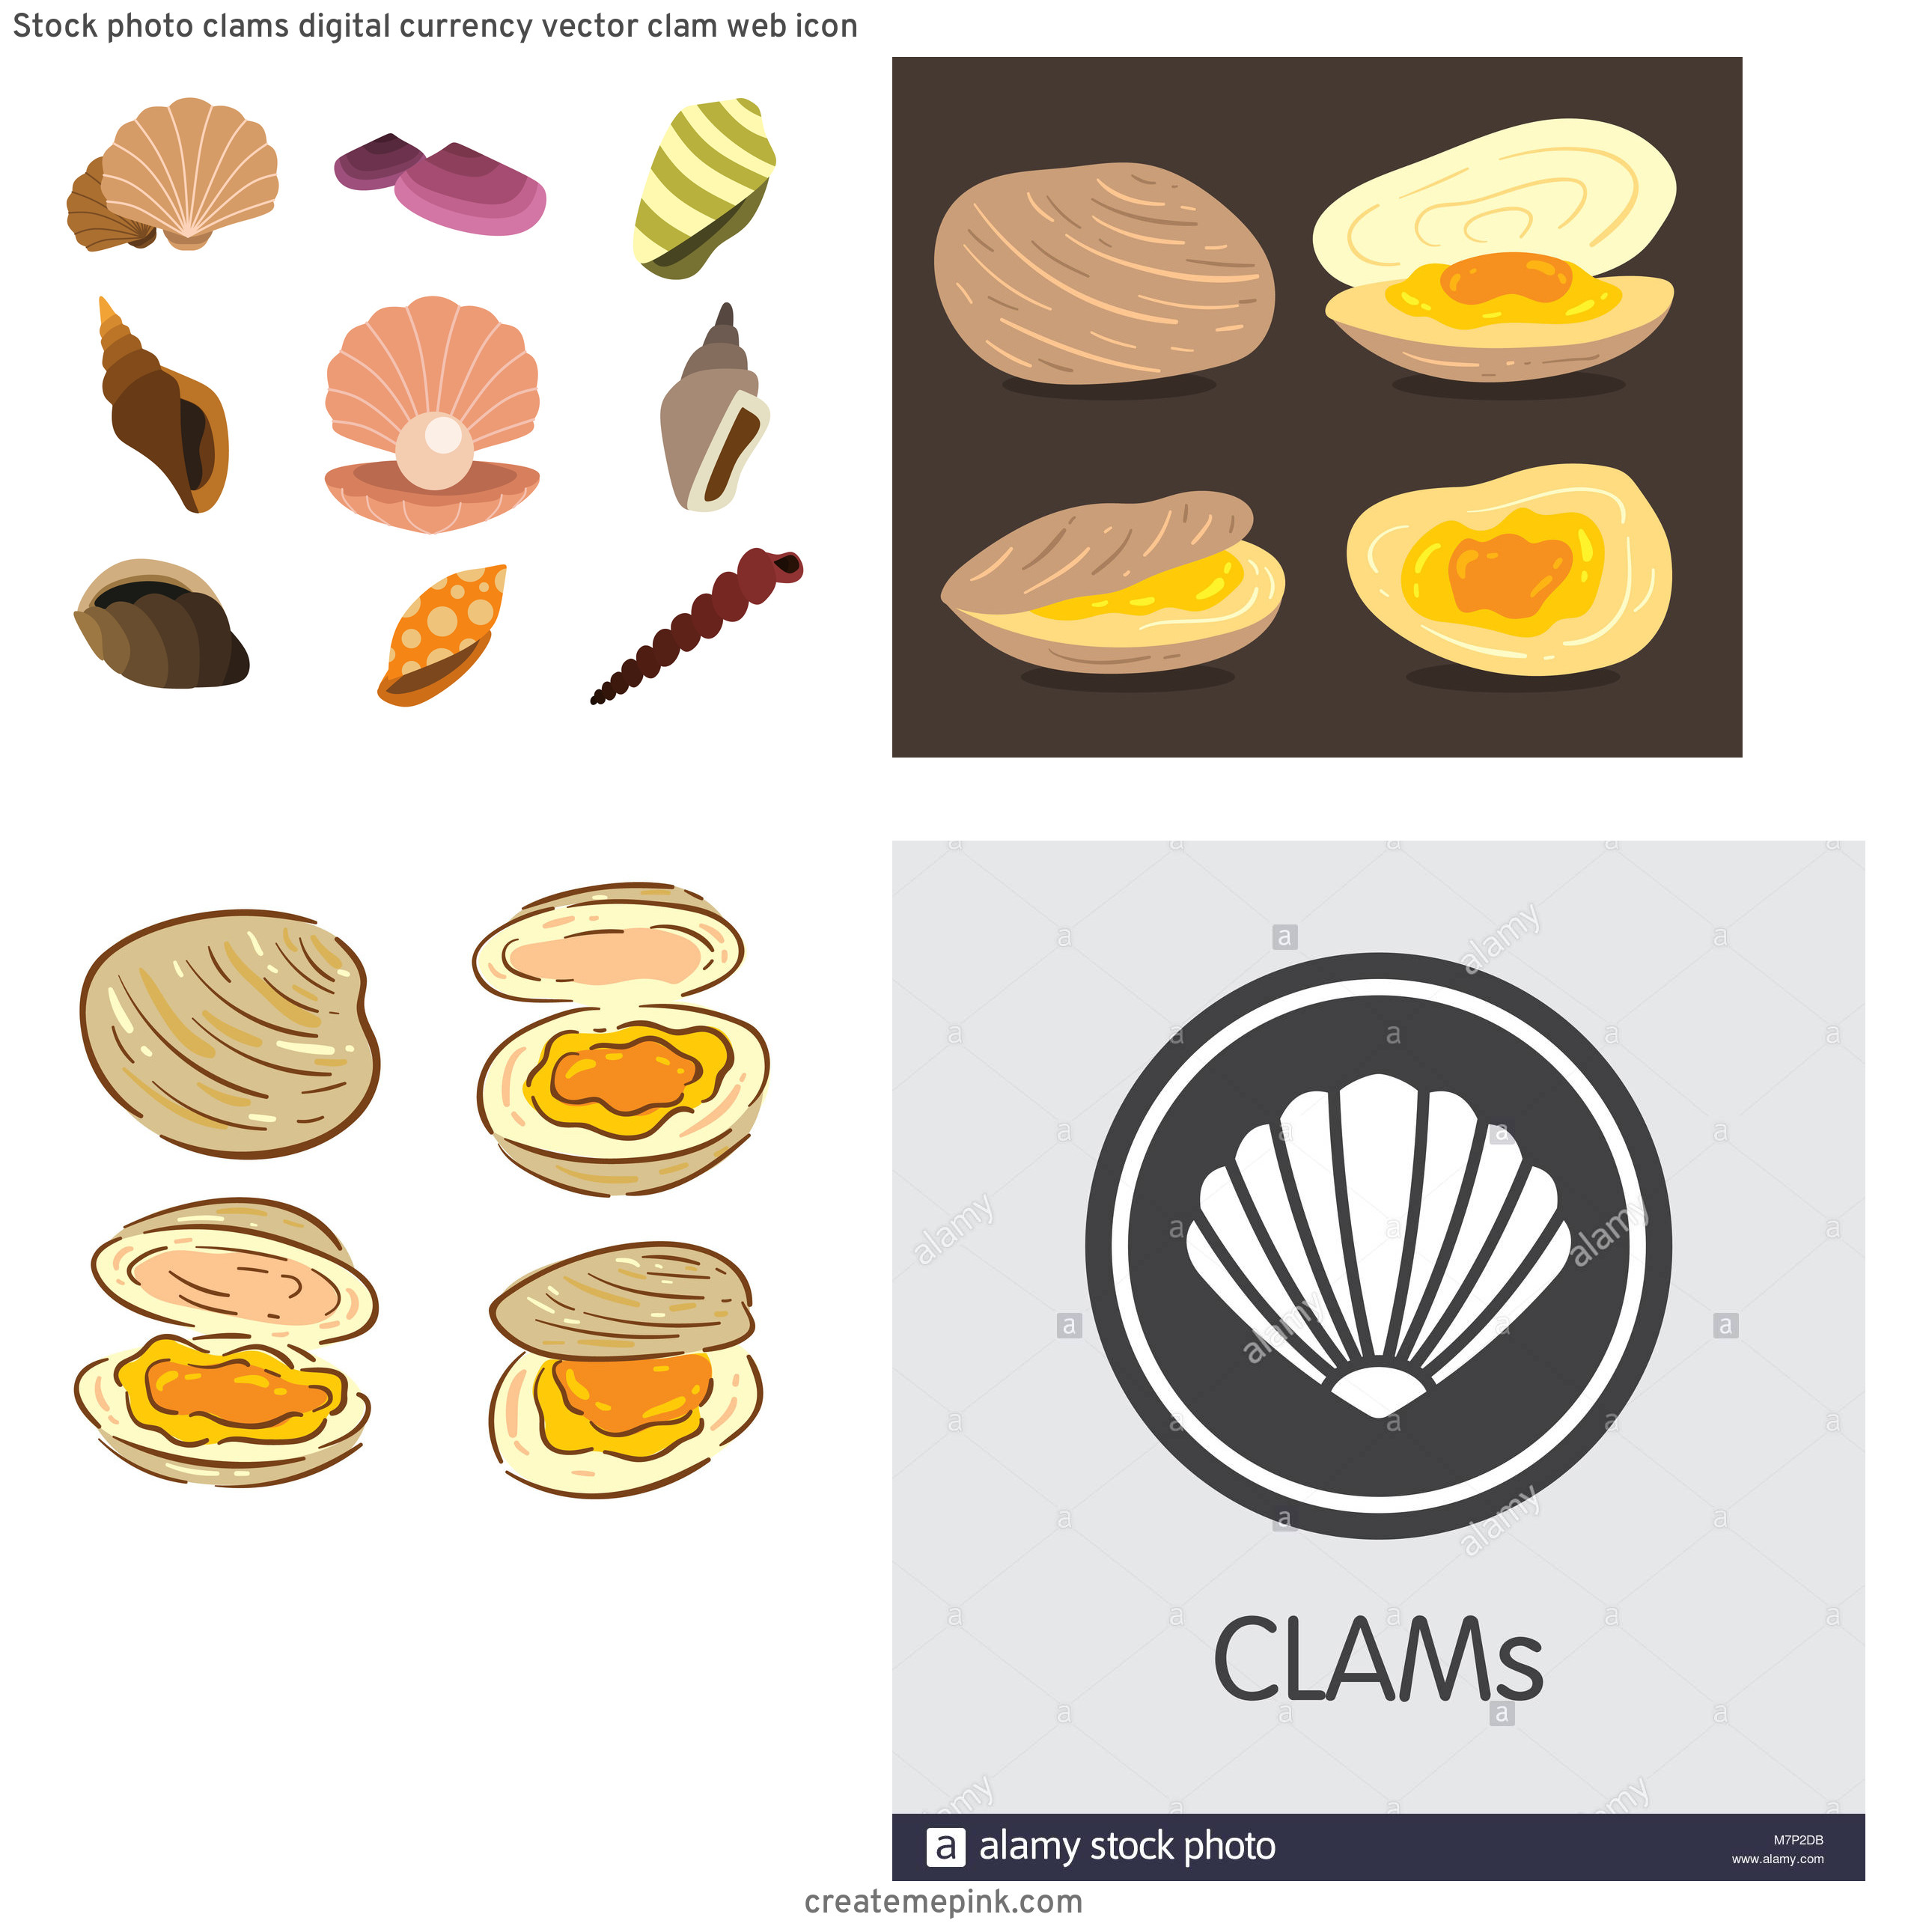 Clam Vector: Stock Photo Clams Digital Currency Vector Clam Web Icon